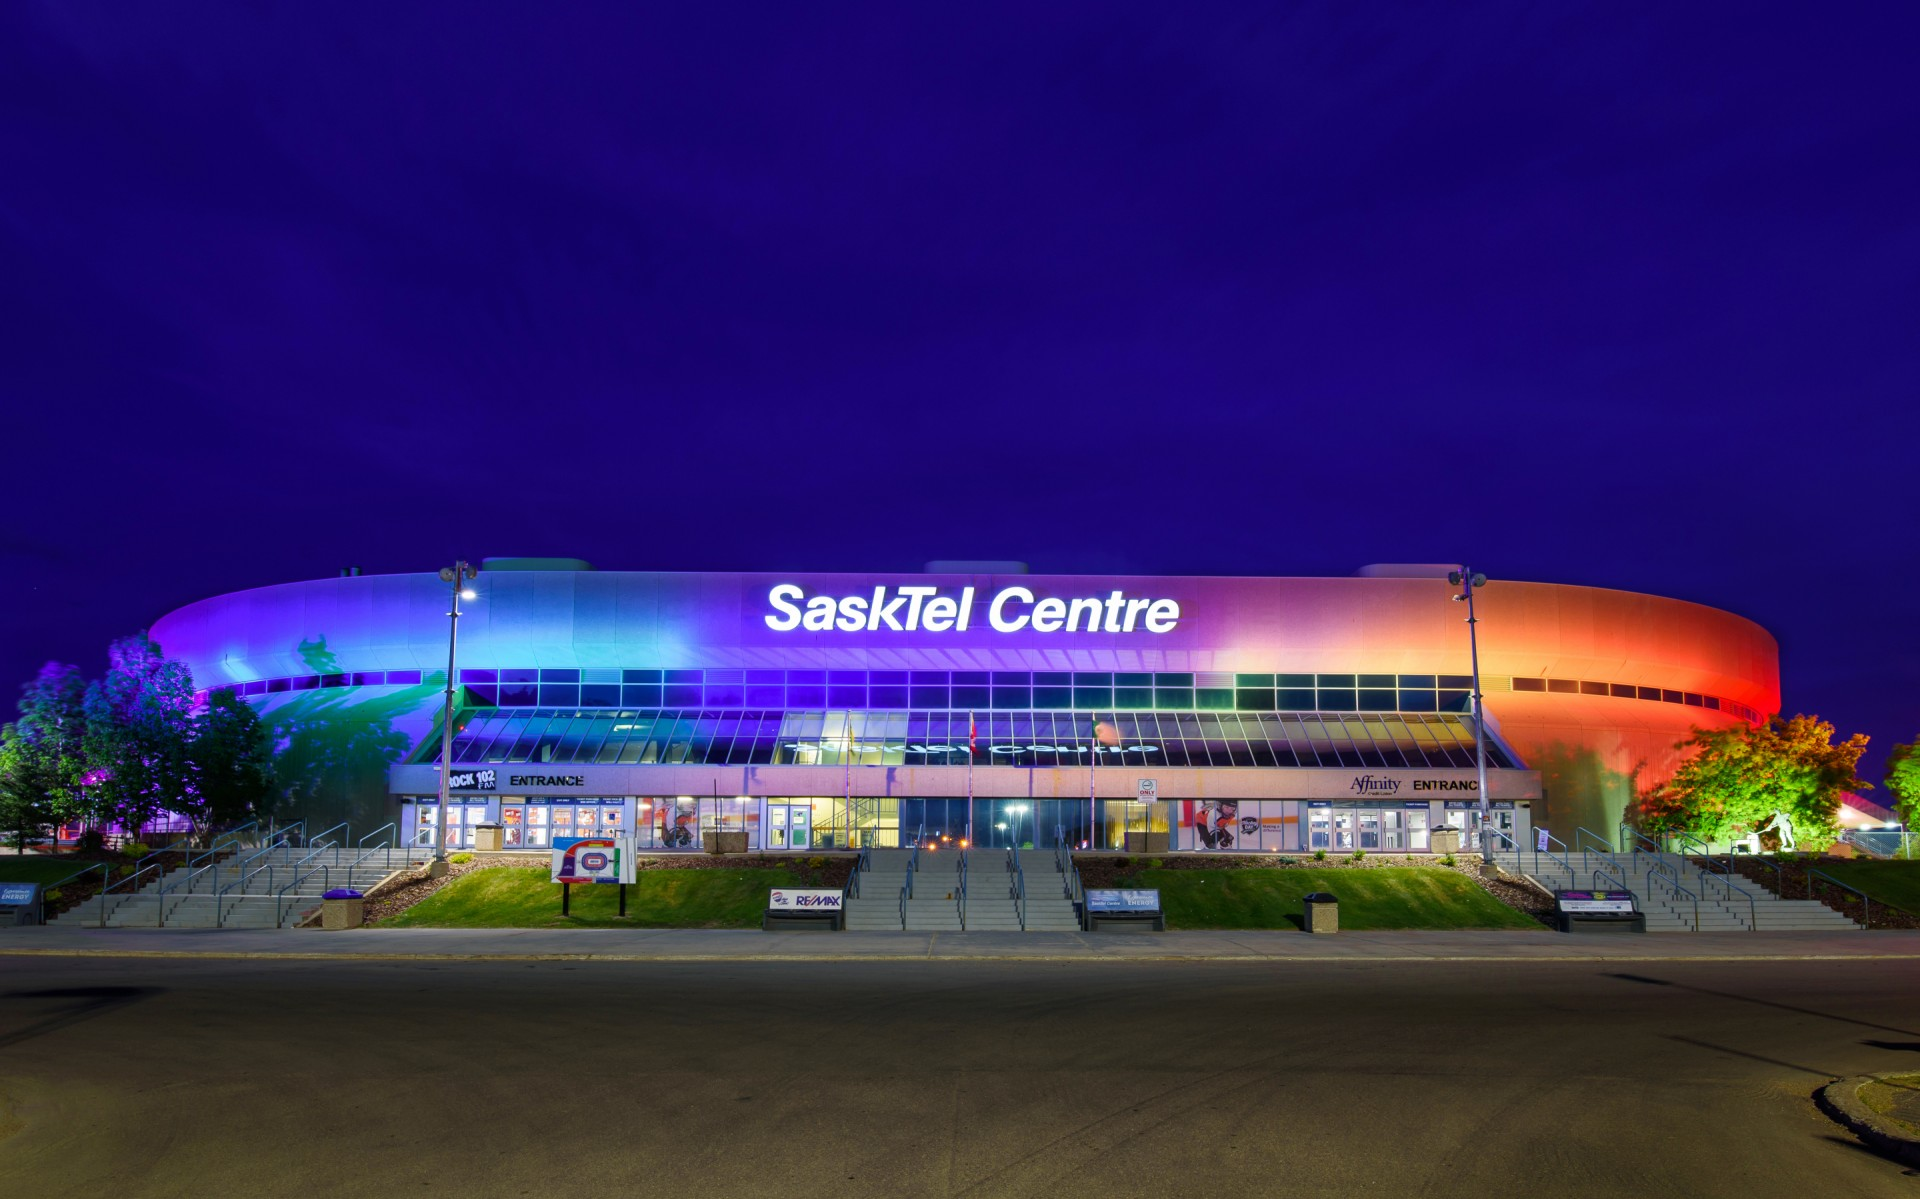 """""""We were always a focal point for the city and province, but the new light system took us to a new level,'' says John Howden, Director of Business Development at SaskTel Centre."""